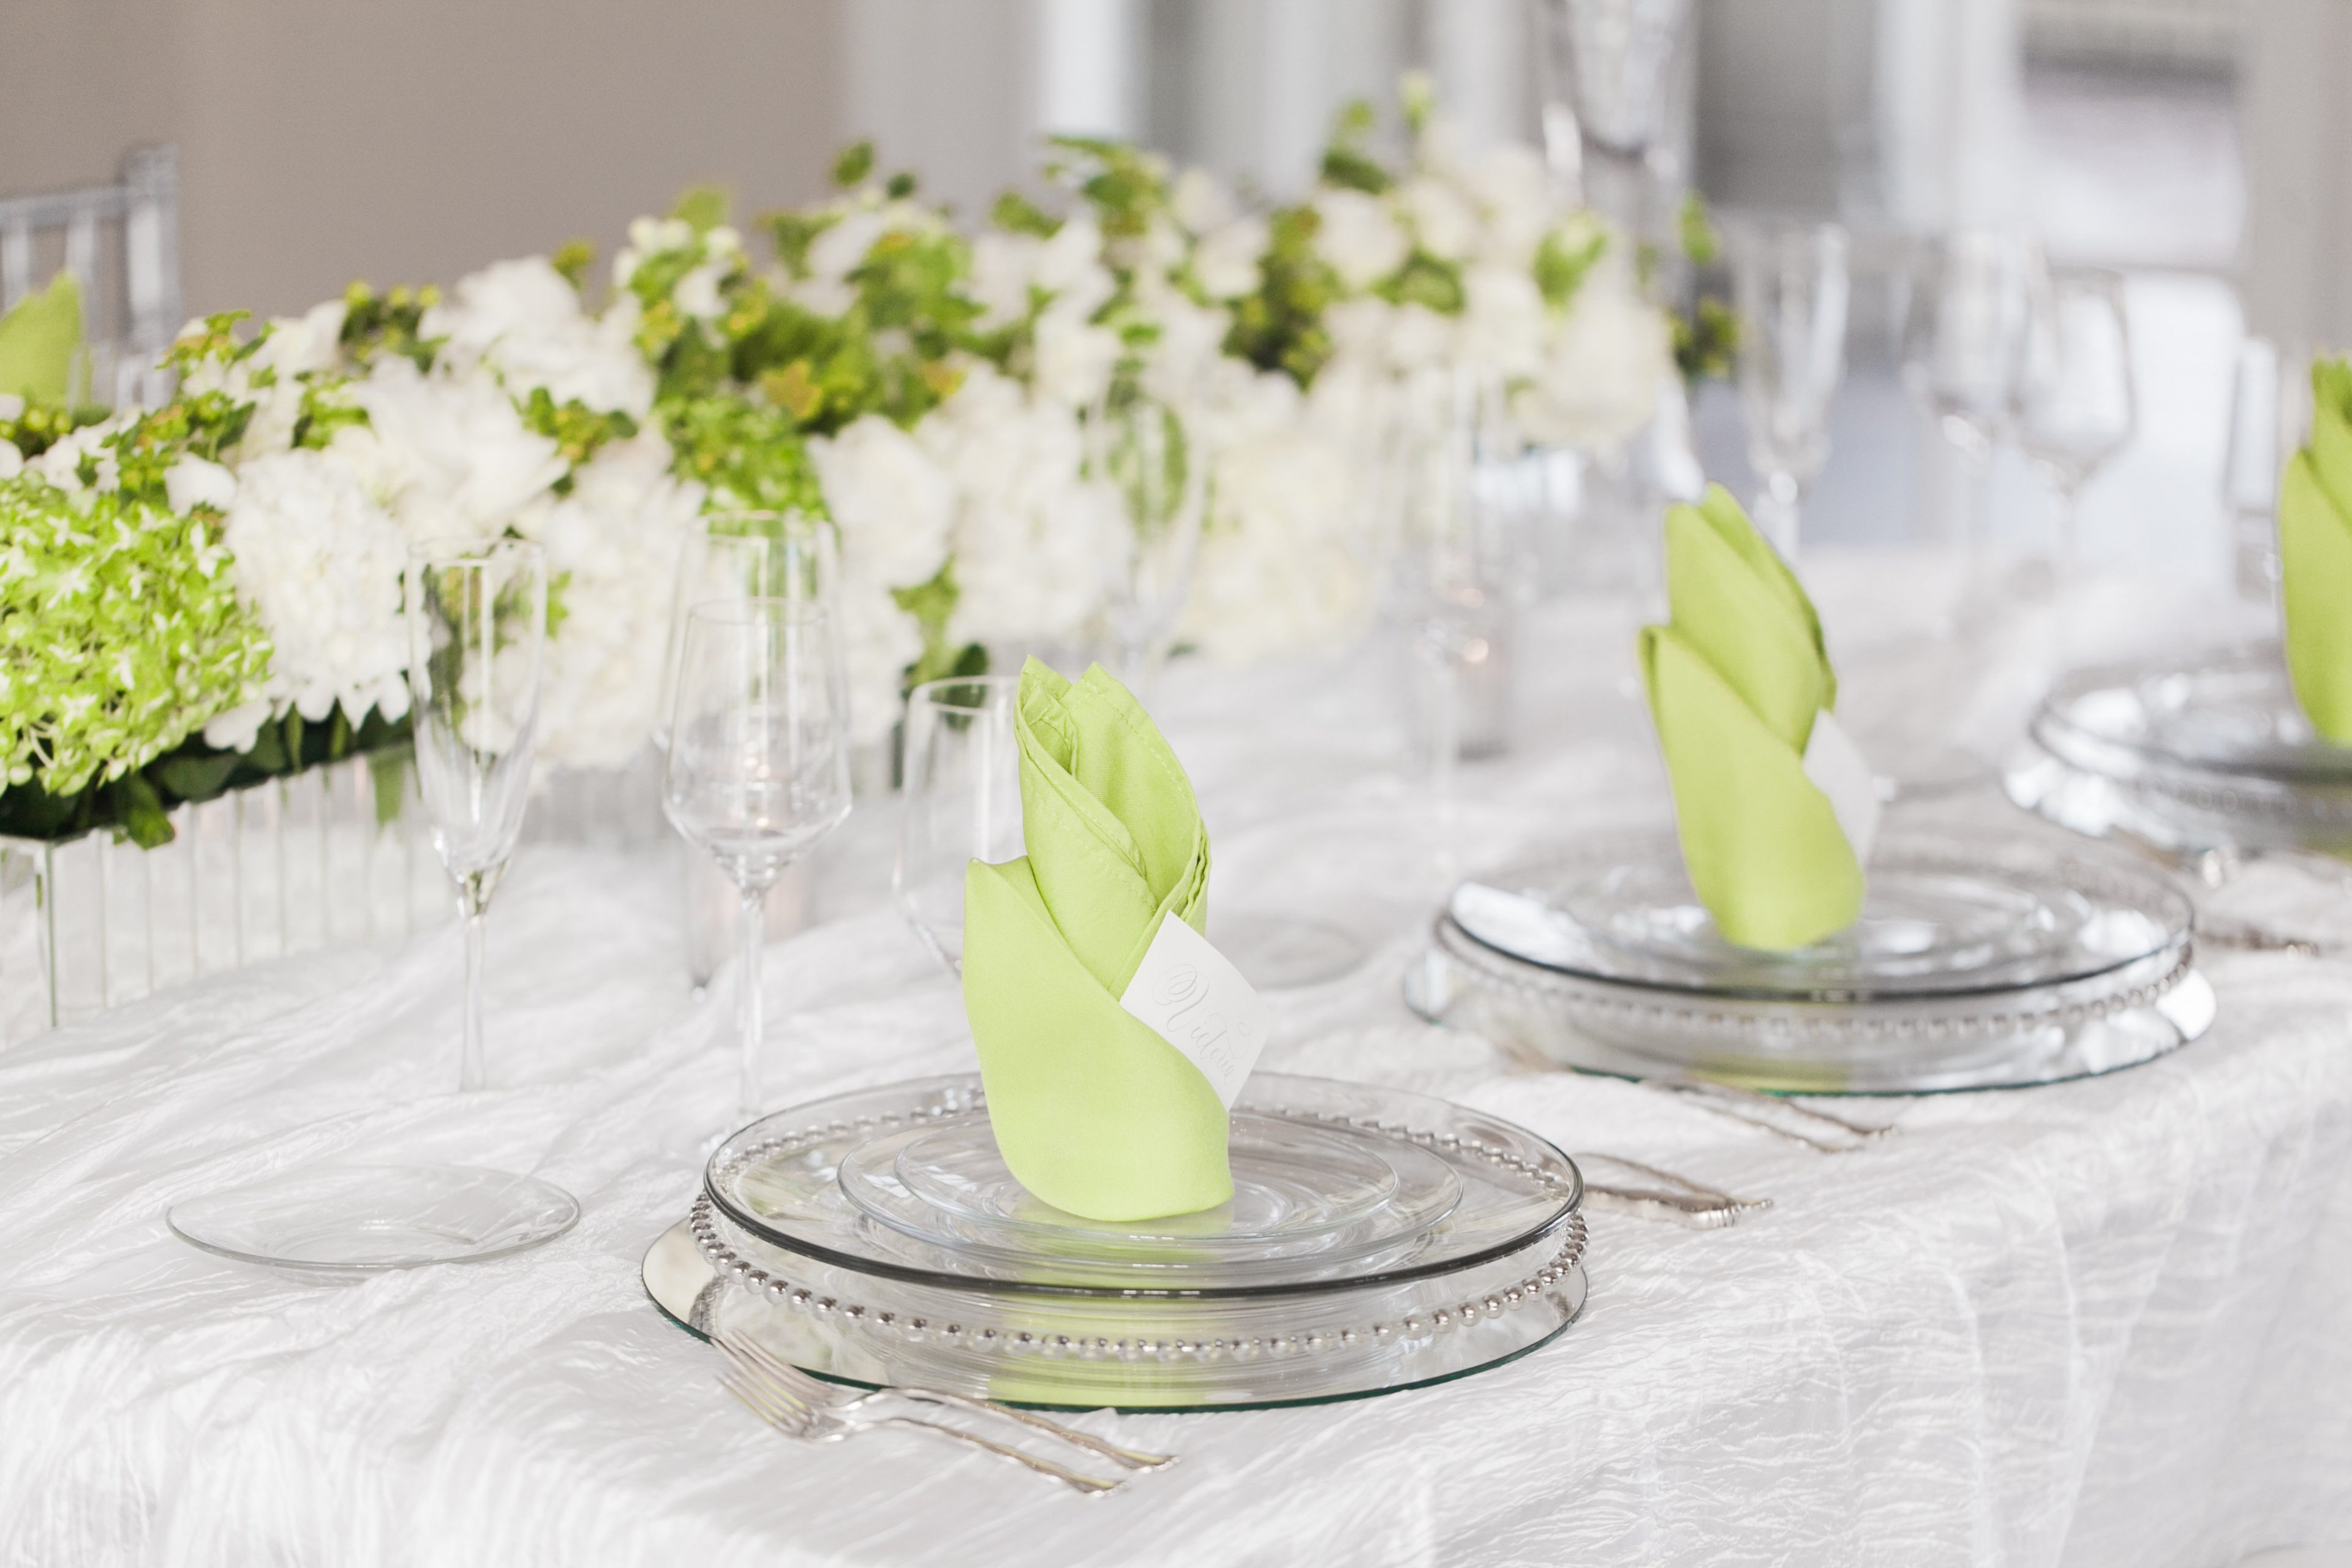 Stunning table setting with glass chargers and accents of green for a wedding reception at the Separk Mansion